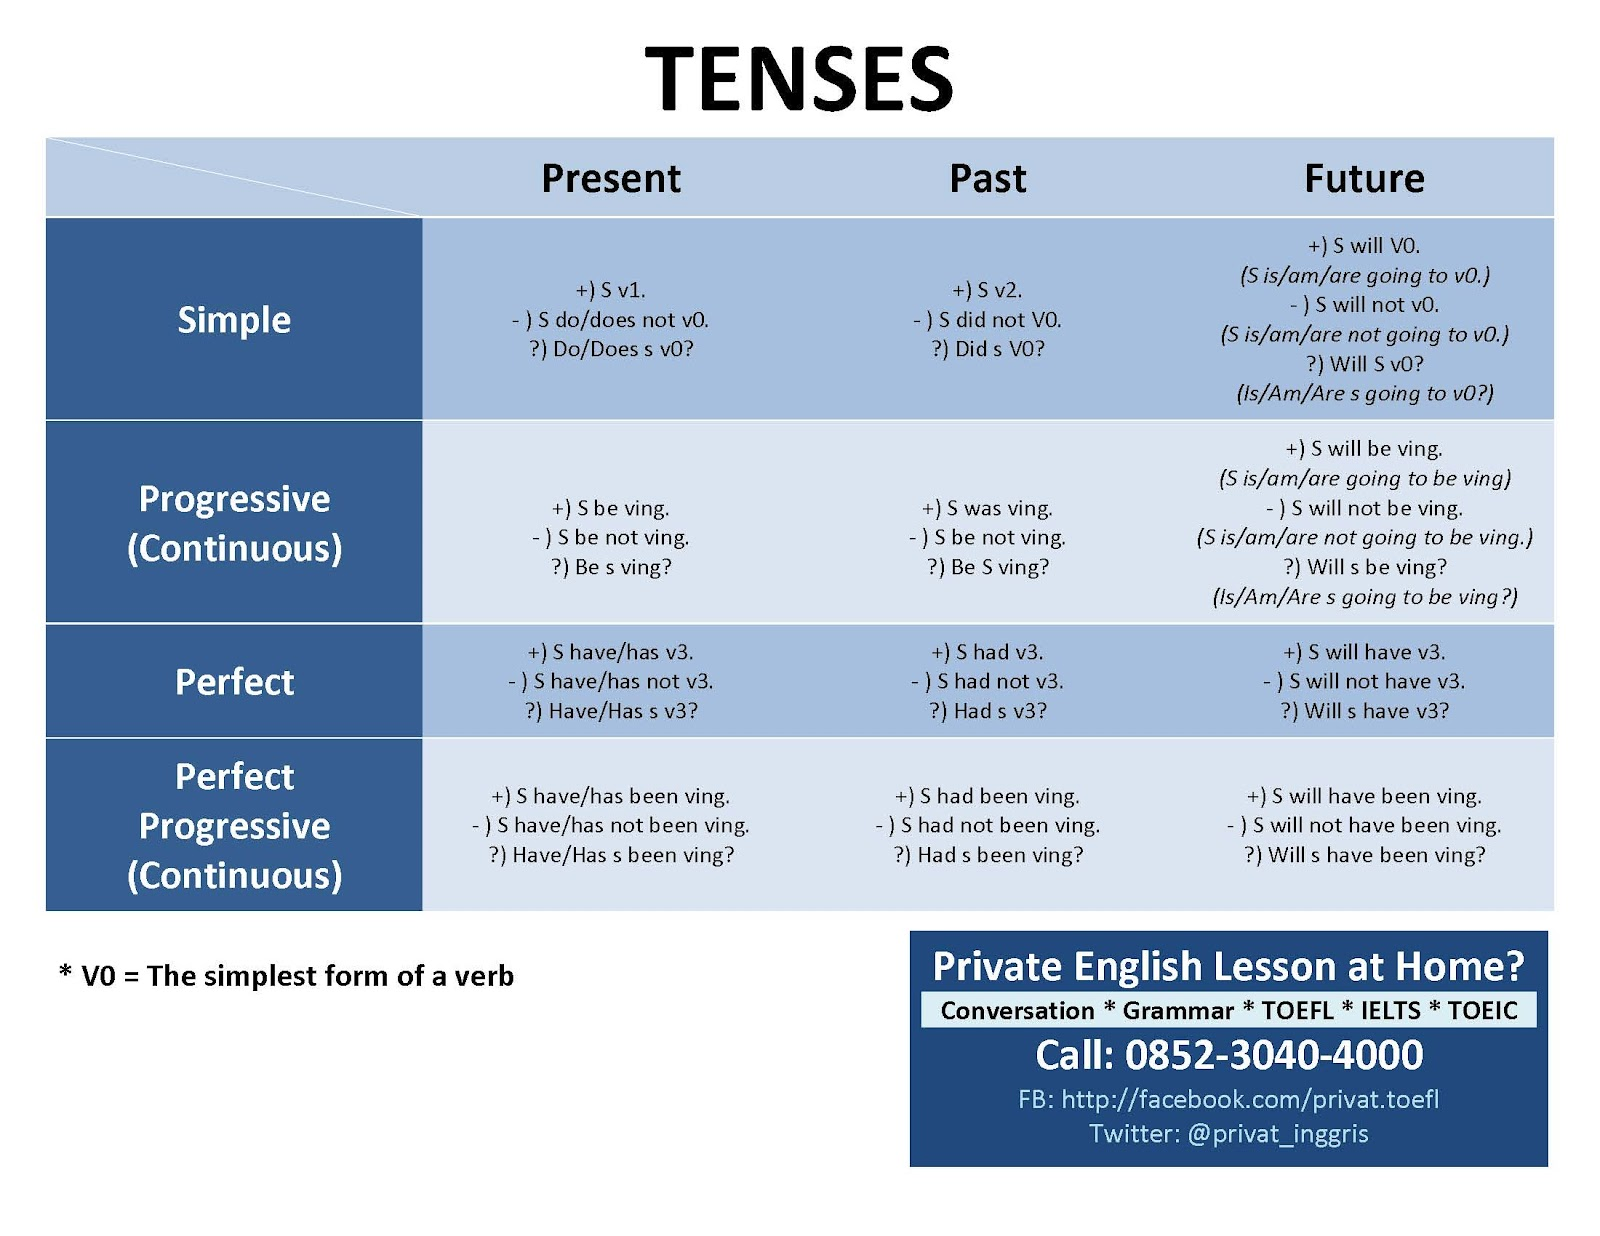 Privat TOEFL: Table of Tenses